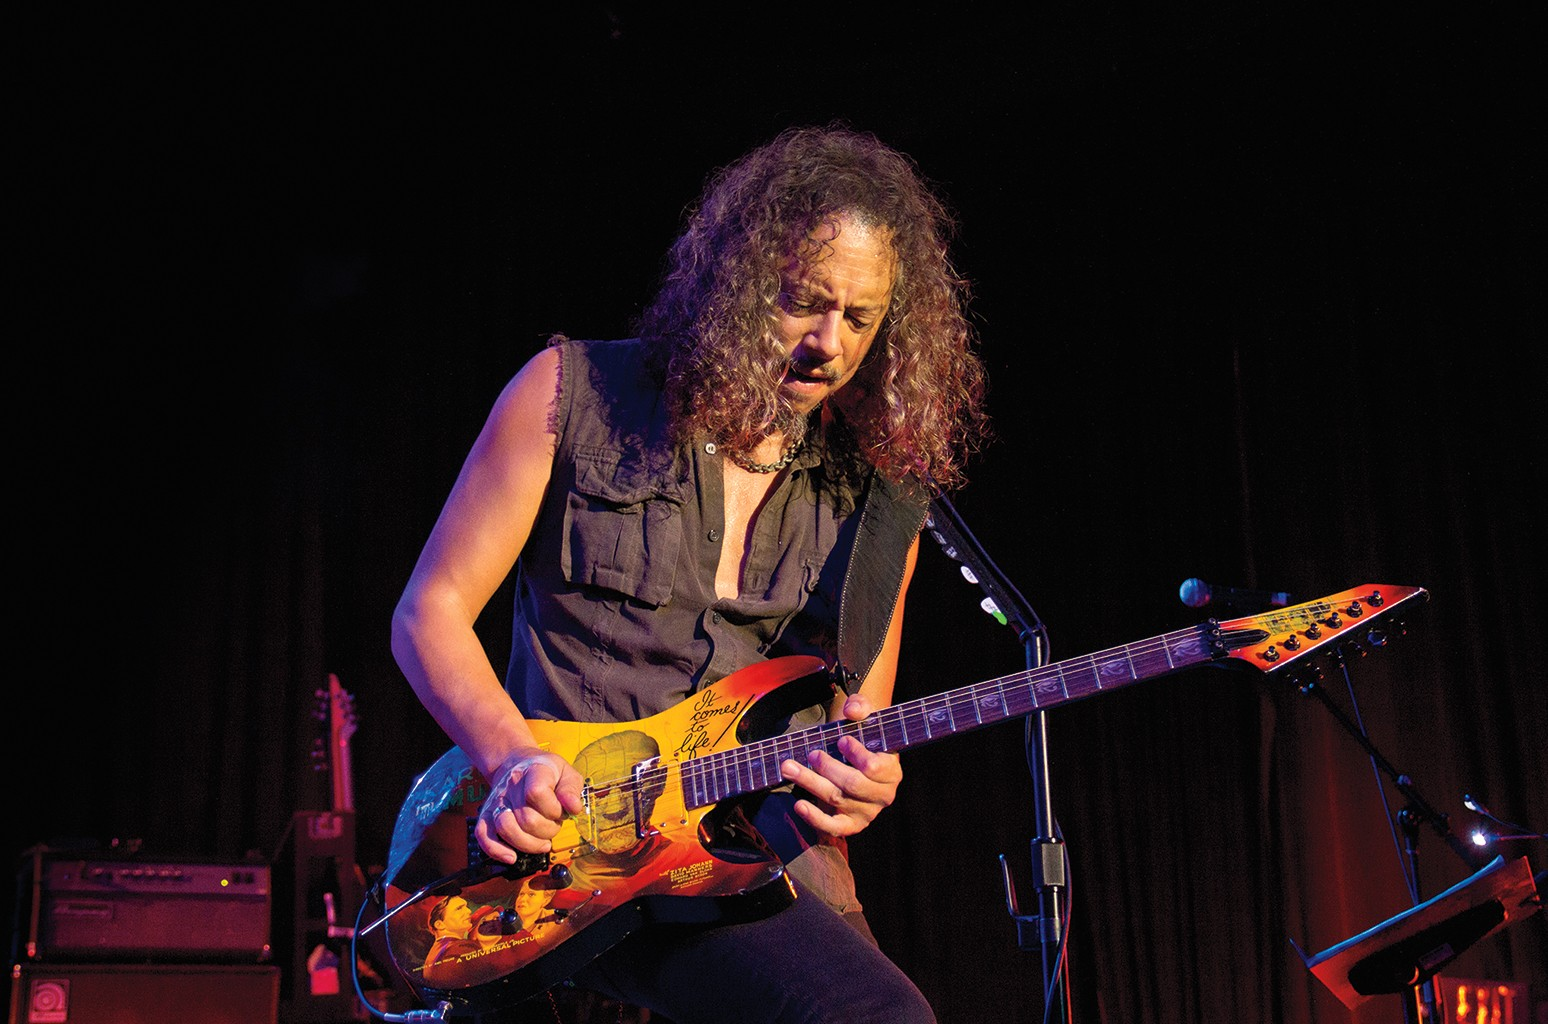 """Hammett onstage in 2011. He appreciates the """"romanticism"""" of vintage posters."""